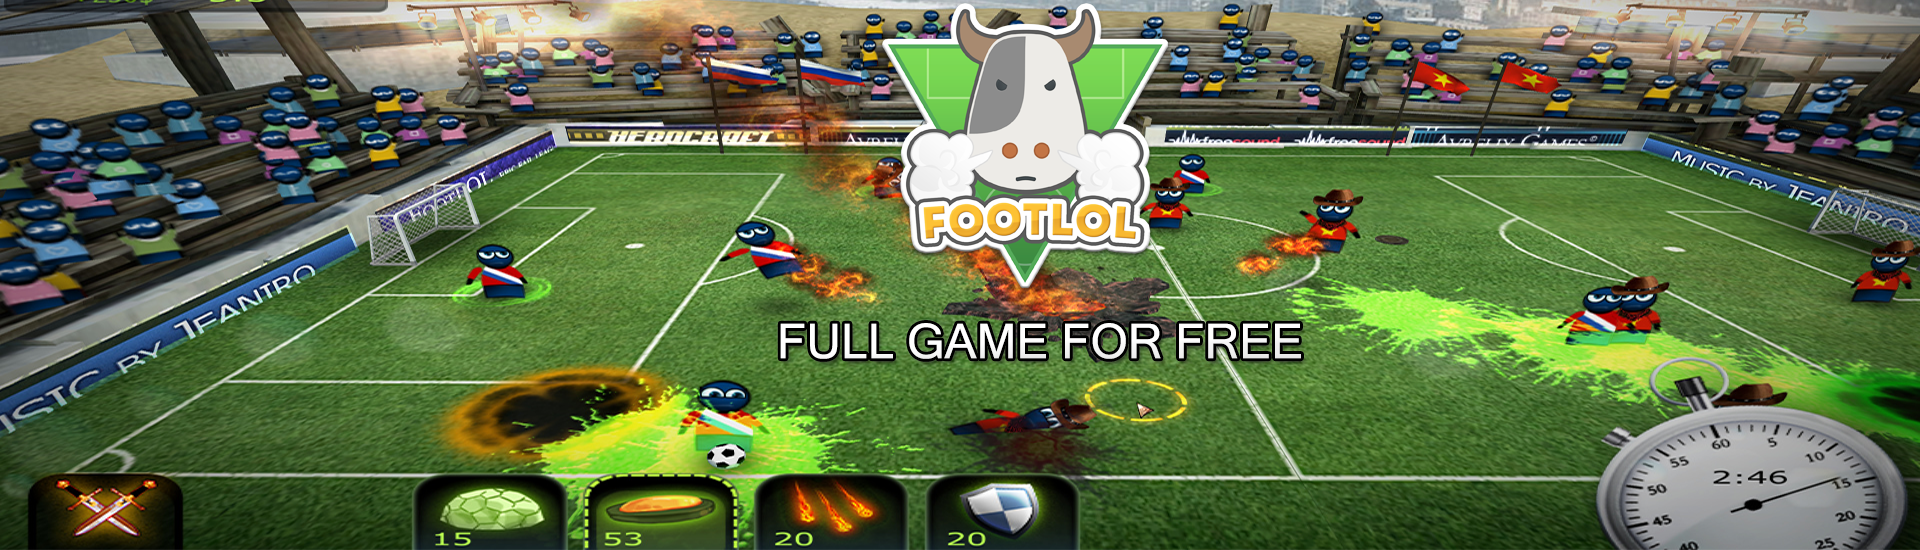 FootLOL: Epic Fail League cover